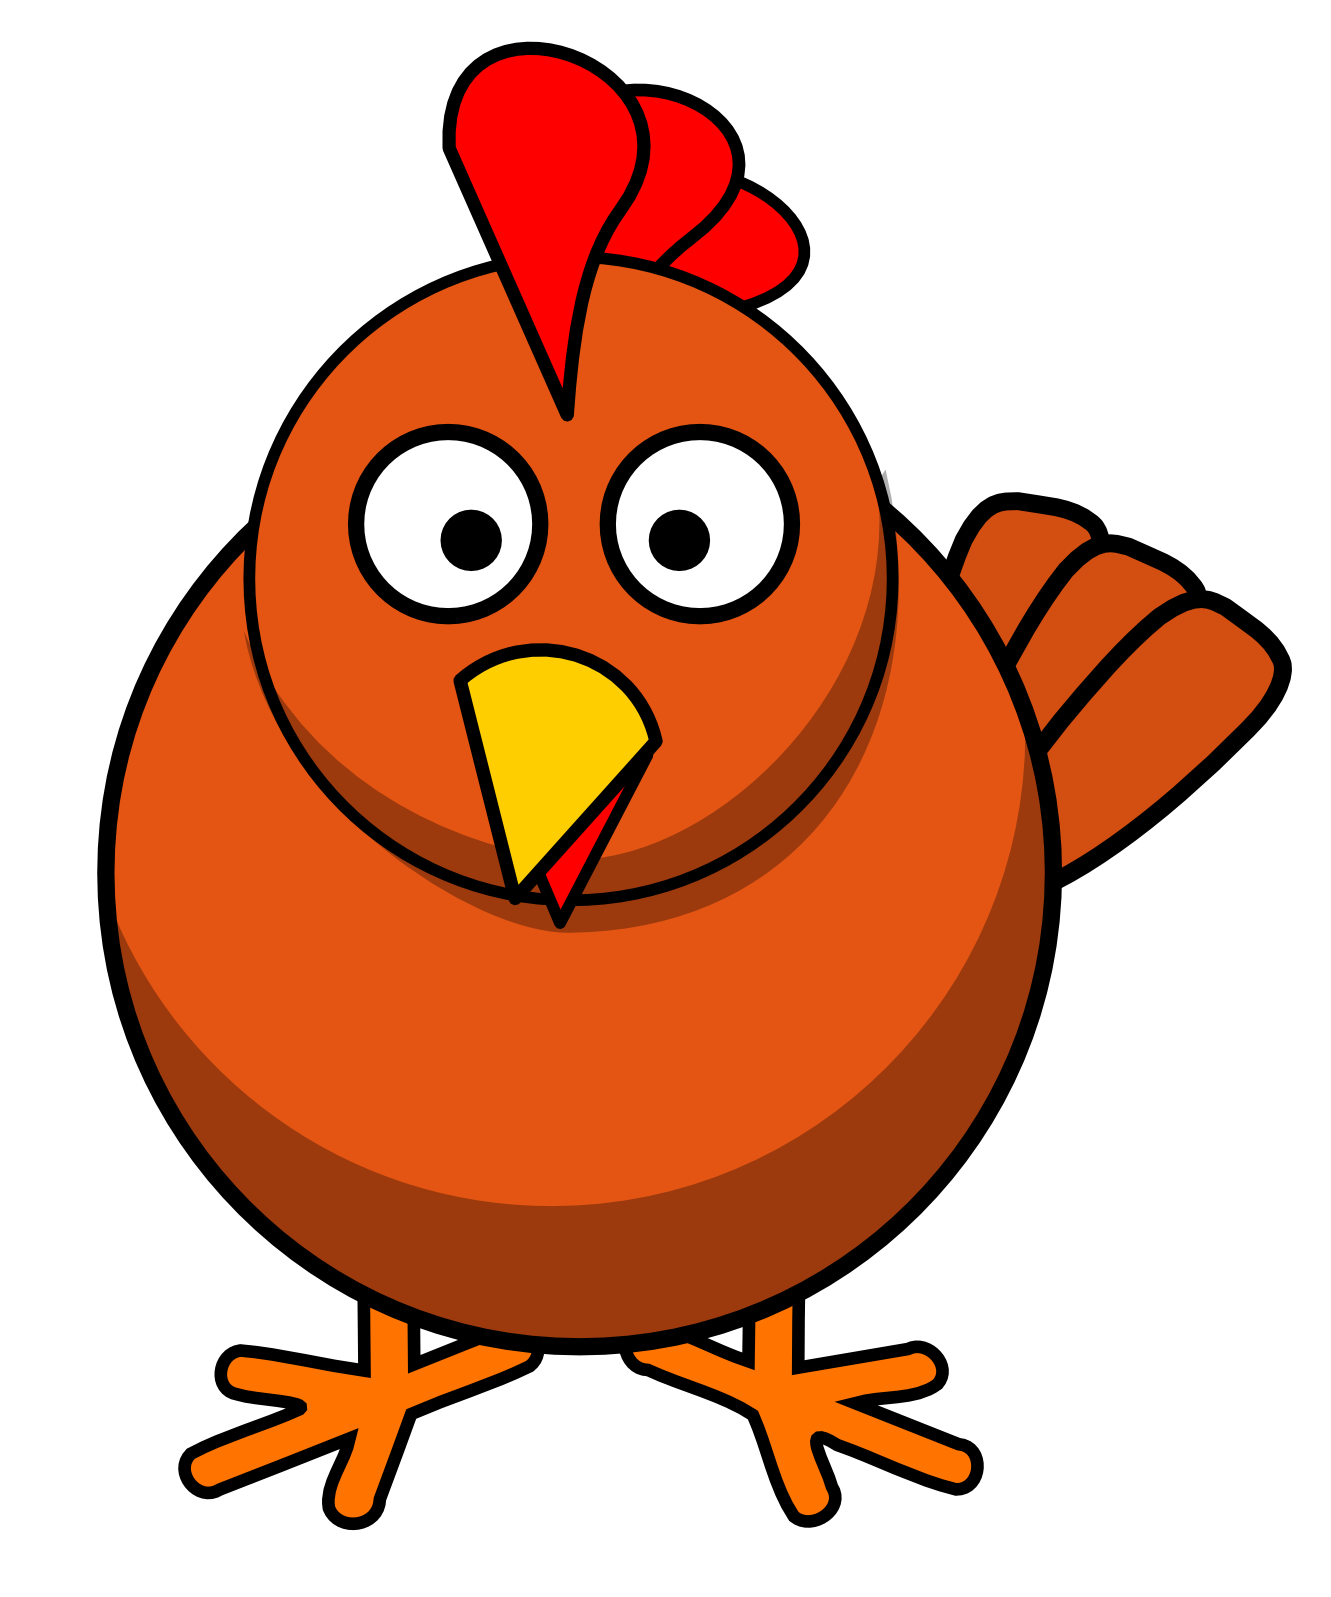 Chicken clipart #10, Download drawings